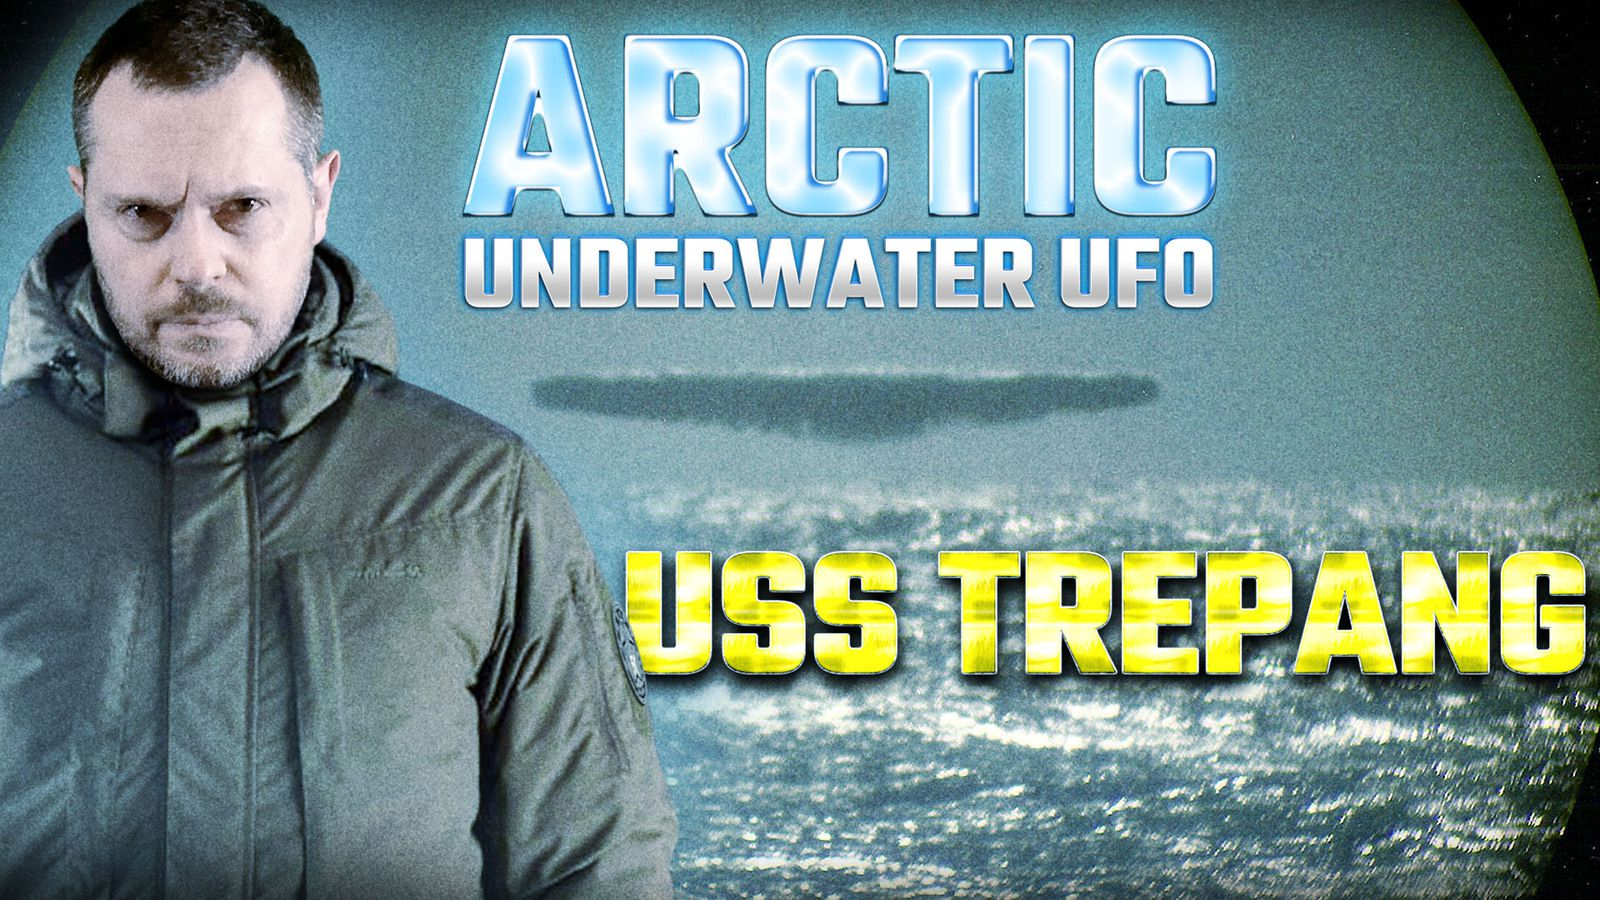 🔴 LIVE : Could ARCTIC UFO Photos taken from Submarine USS TREPANG (1971) prove Existence of Aliens?